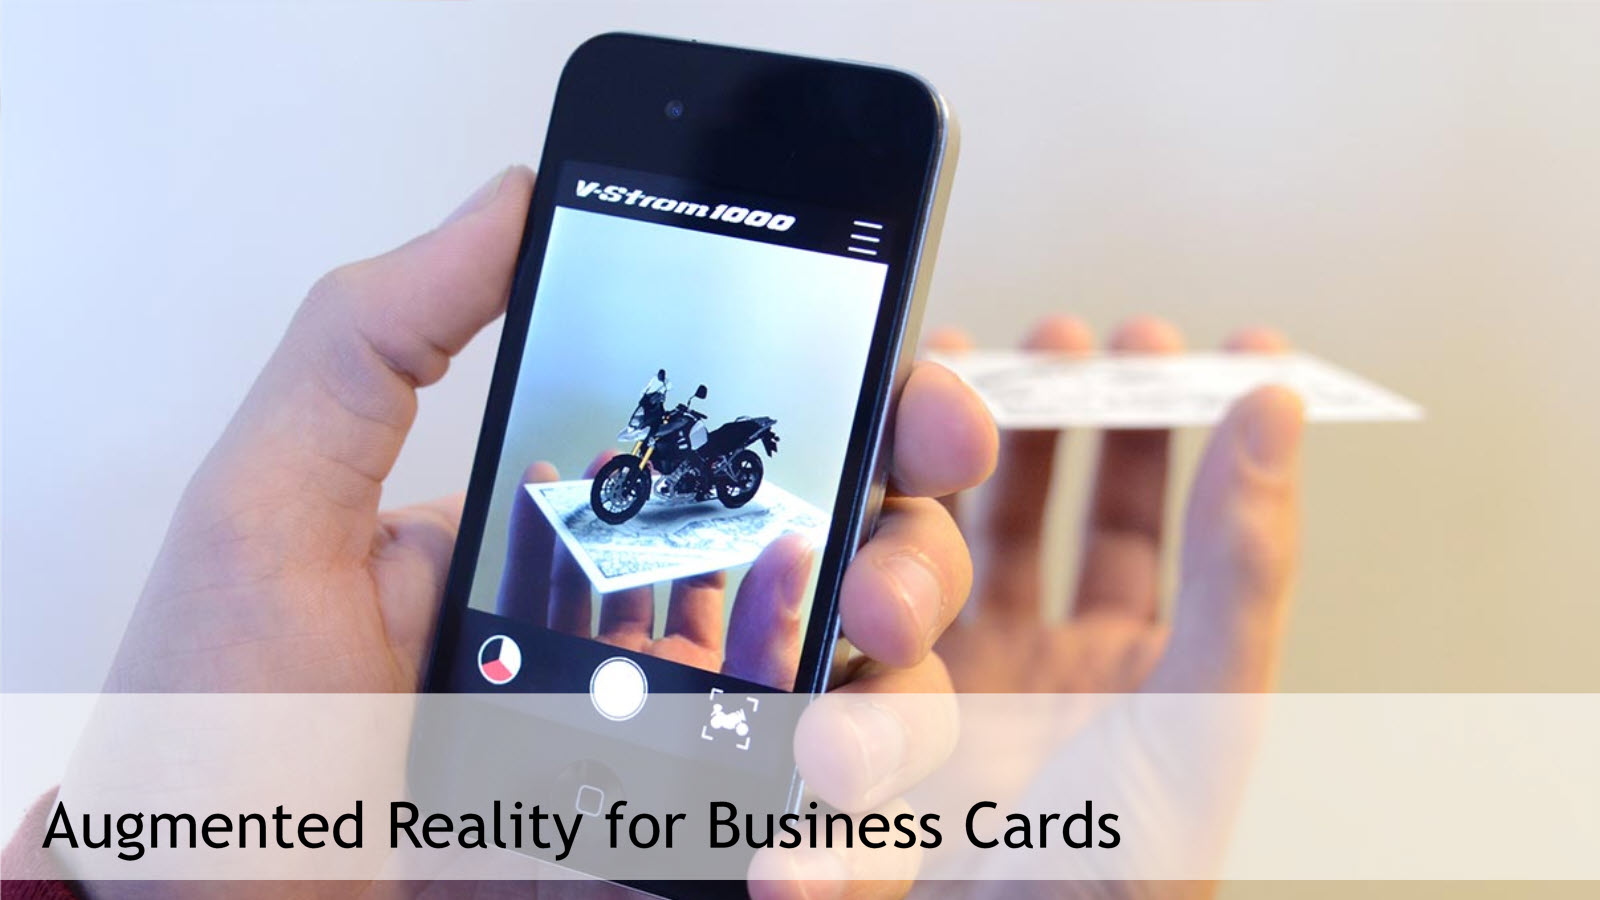 Augmented reality business cards youtube choice image card design augmented reality business cards youtube choice image card design augmented reality business cards youtube choice image reheart Choice Image